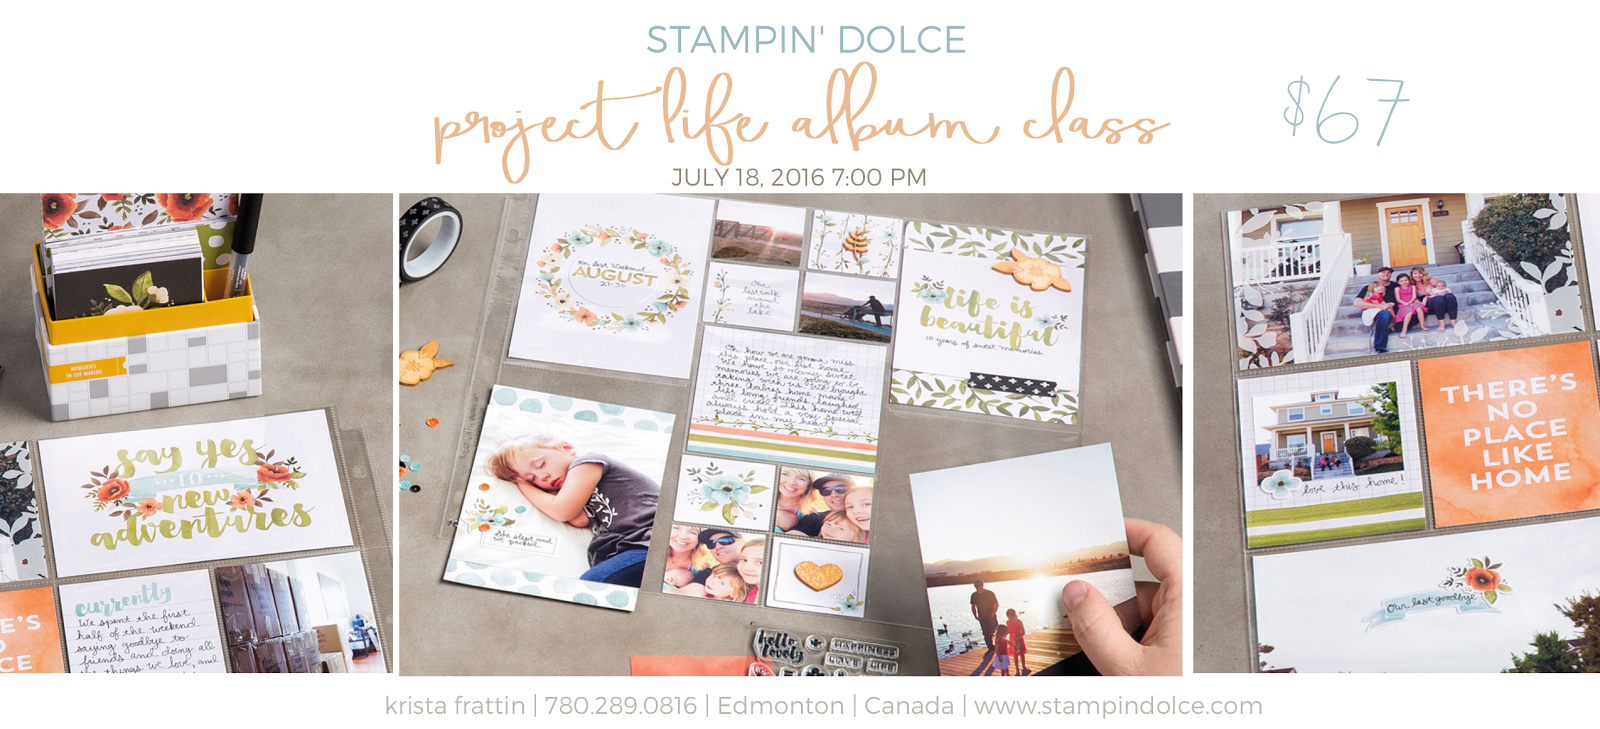 Stampin Dolce Project Life Memory Album Class